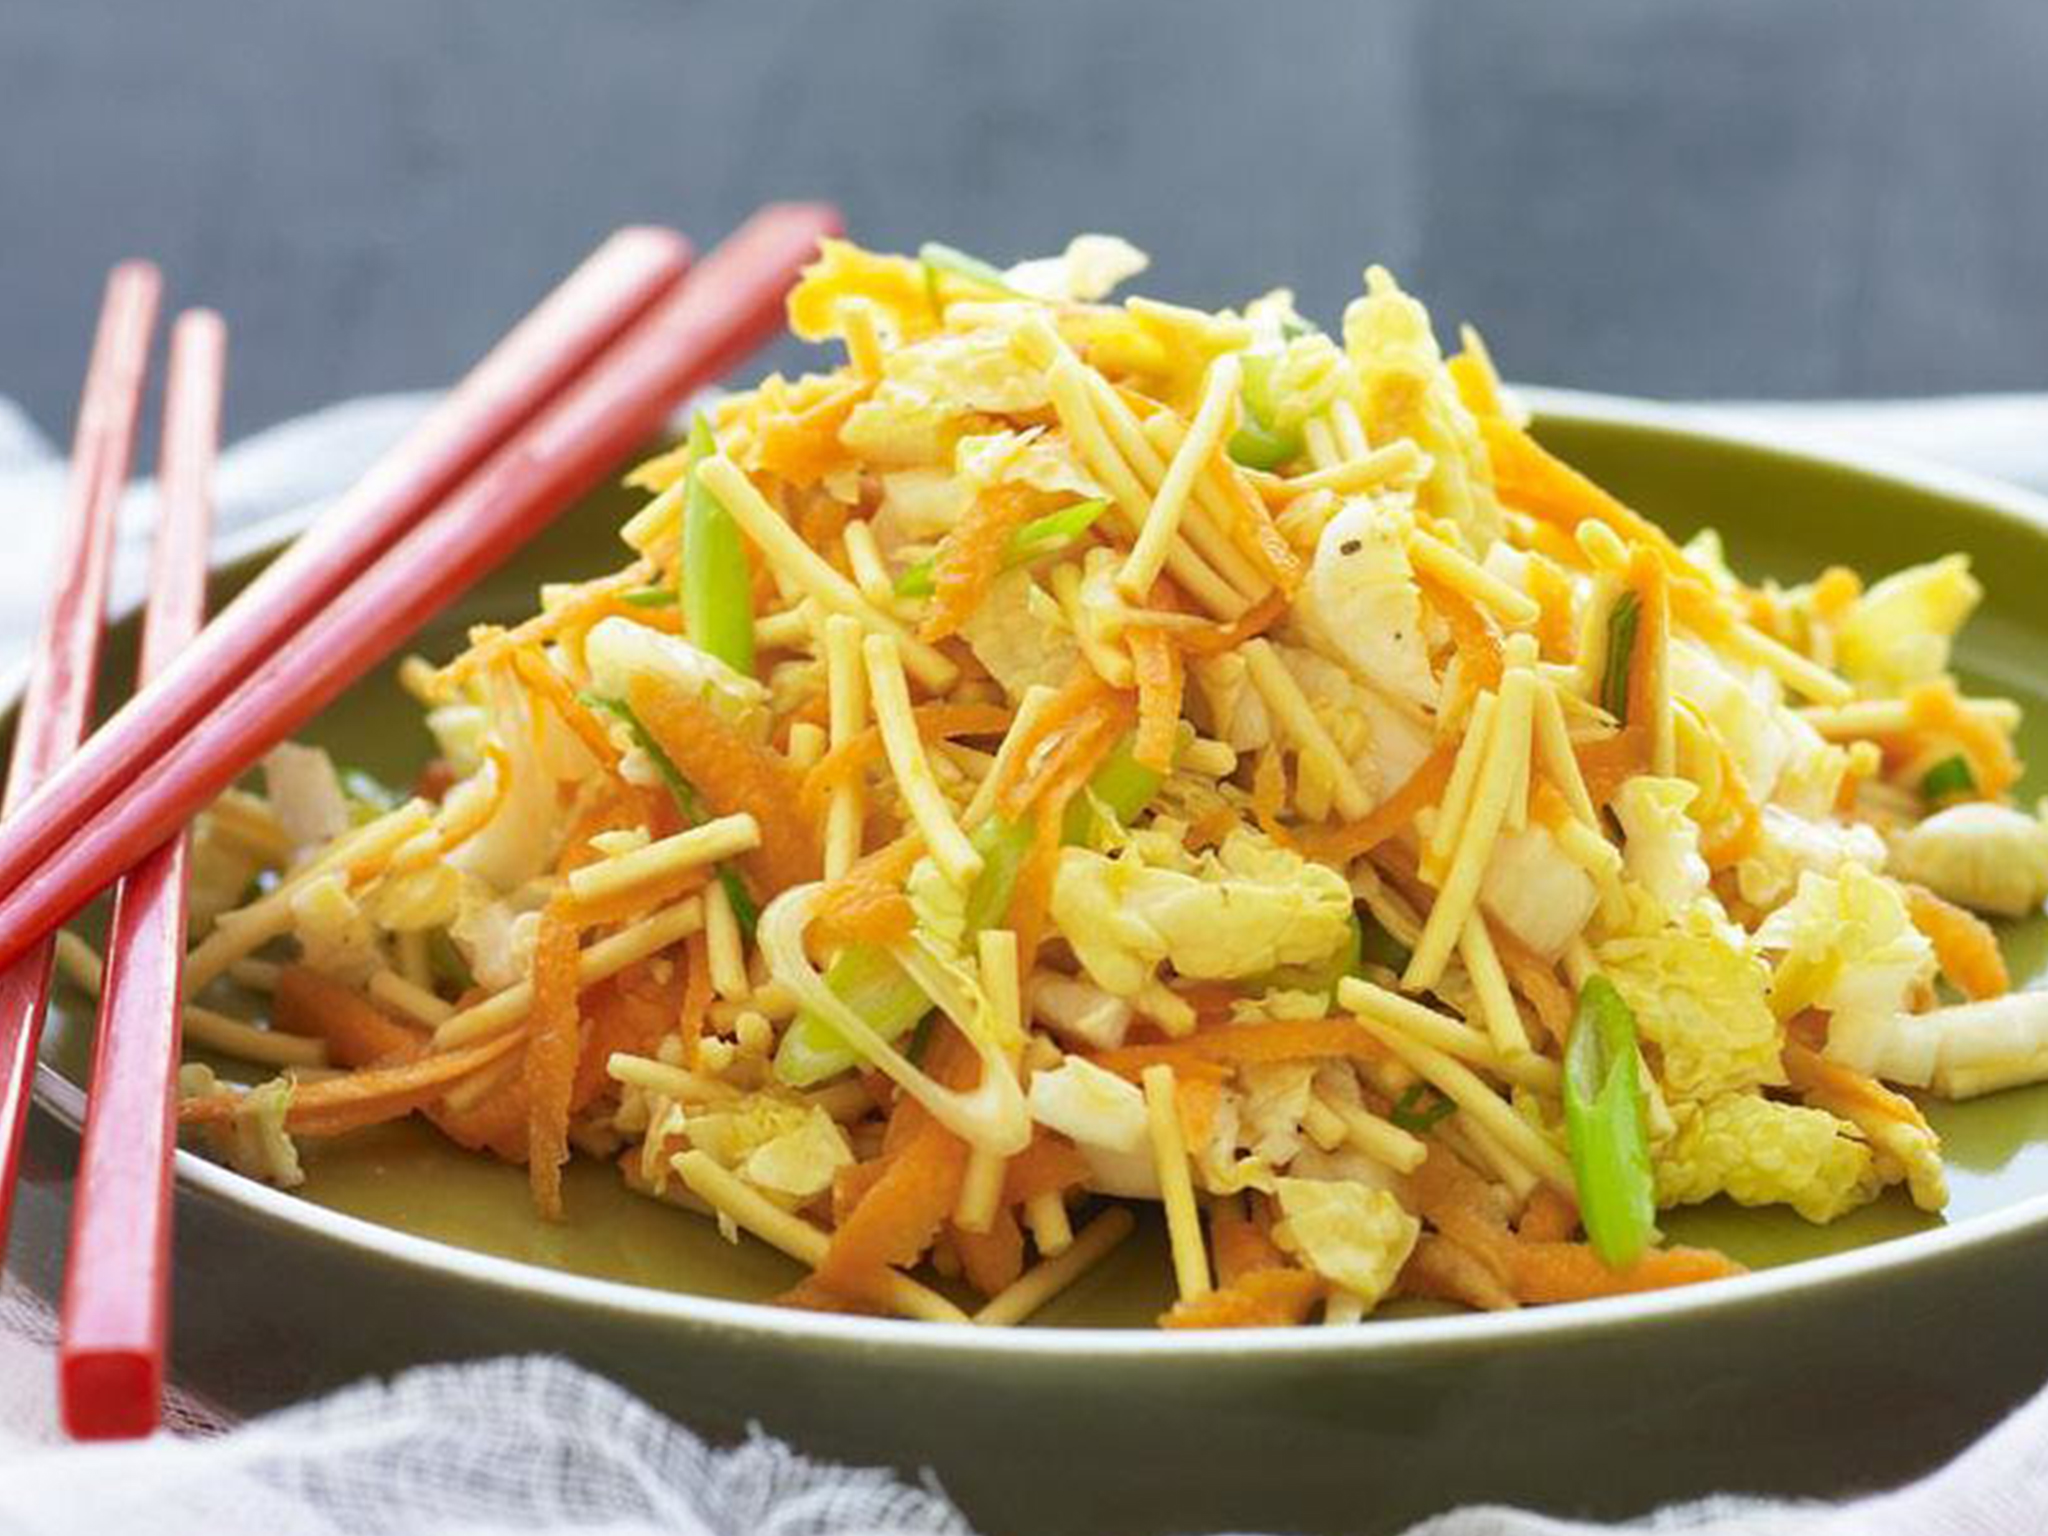 Commit error. asian style cole slaw sorry, that